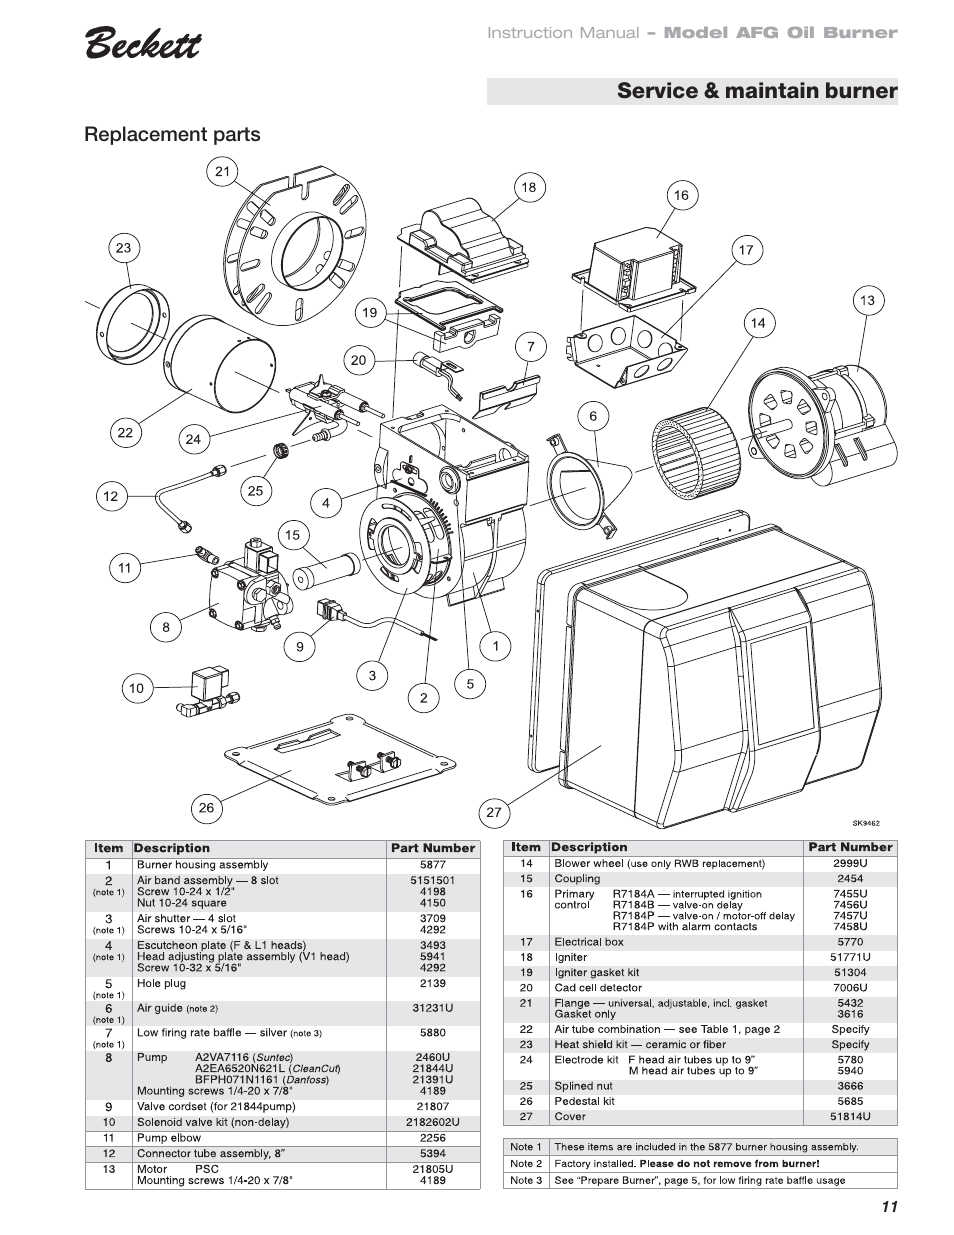 Honeywell Beckett Oil Burner Wiring Diagram from www.manualsdir.com